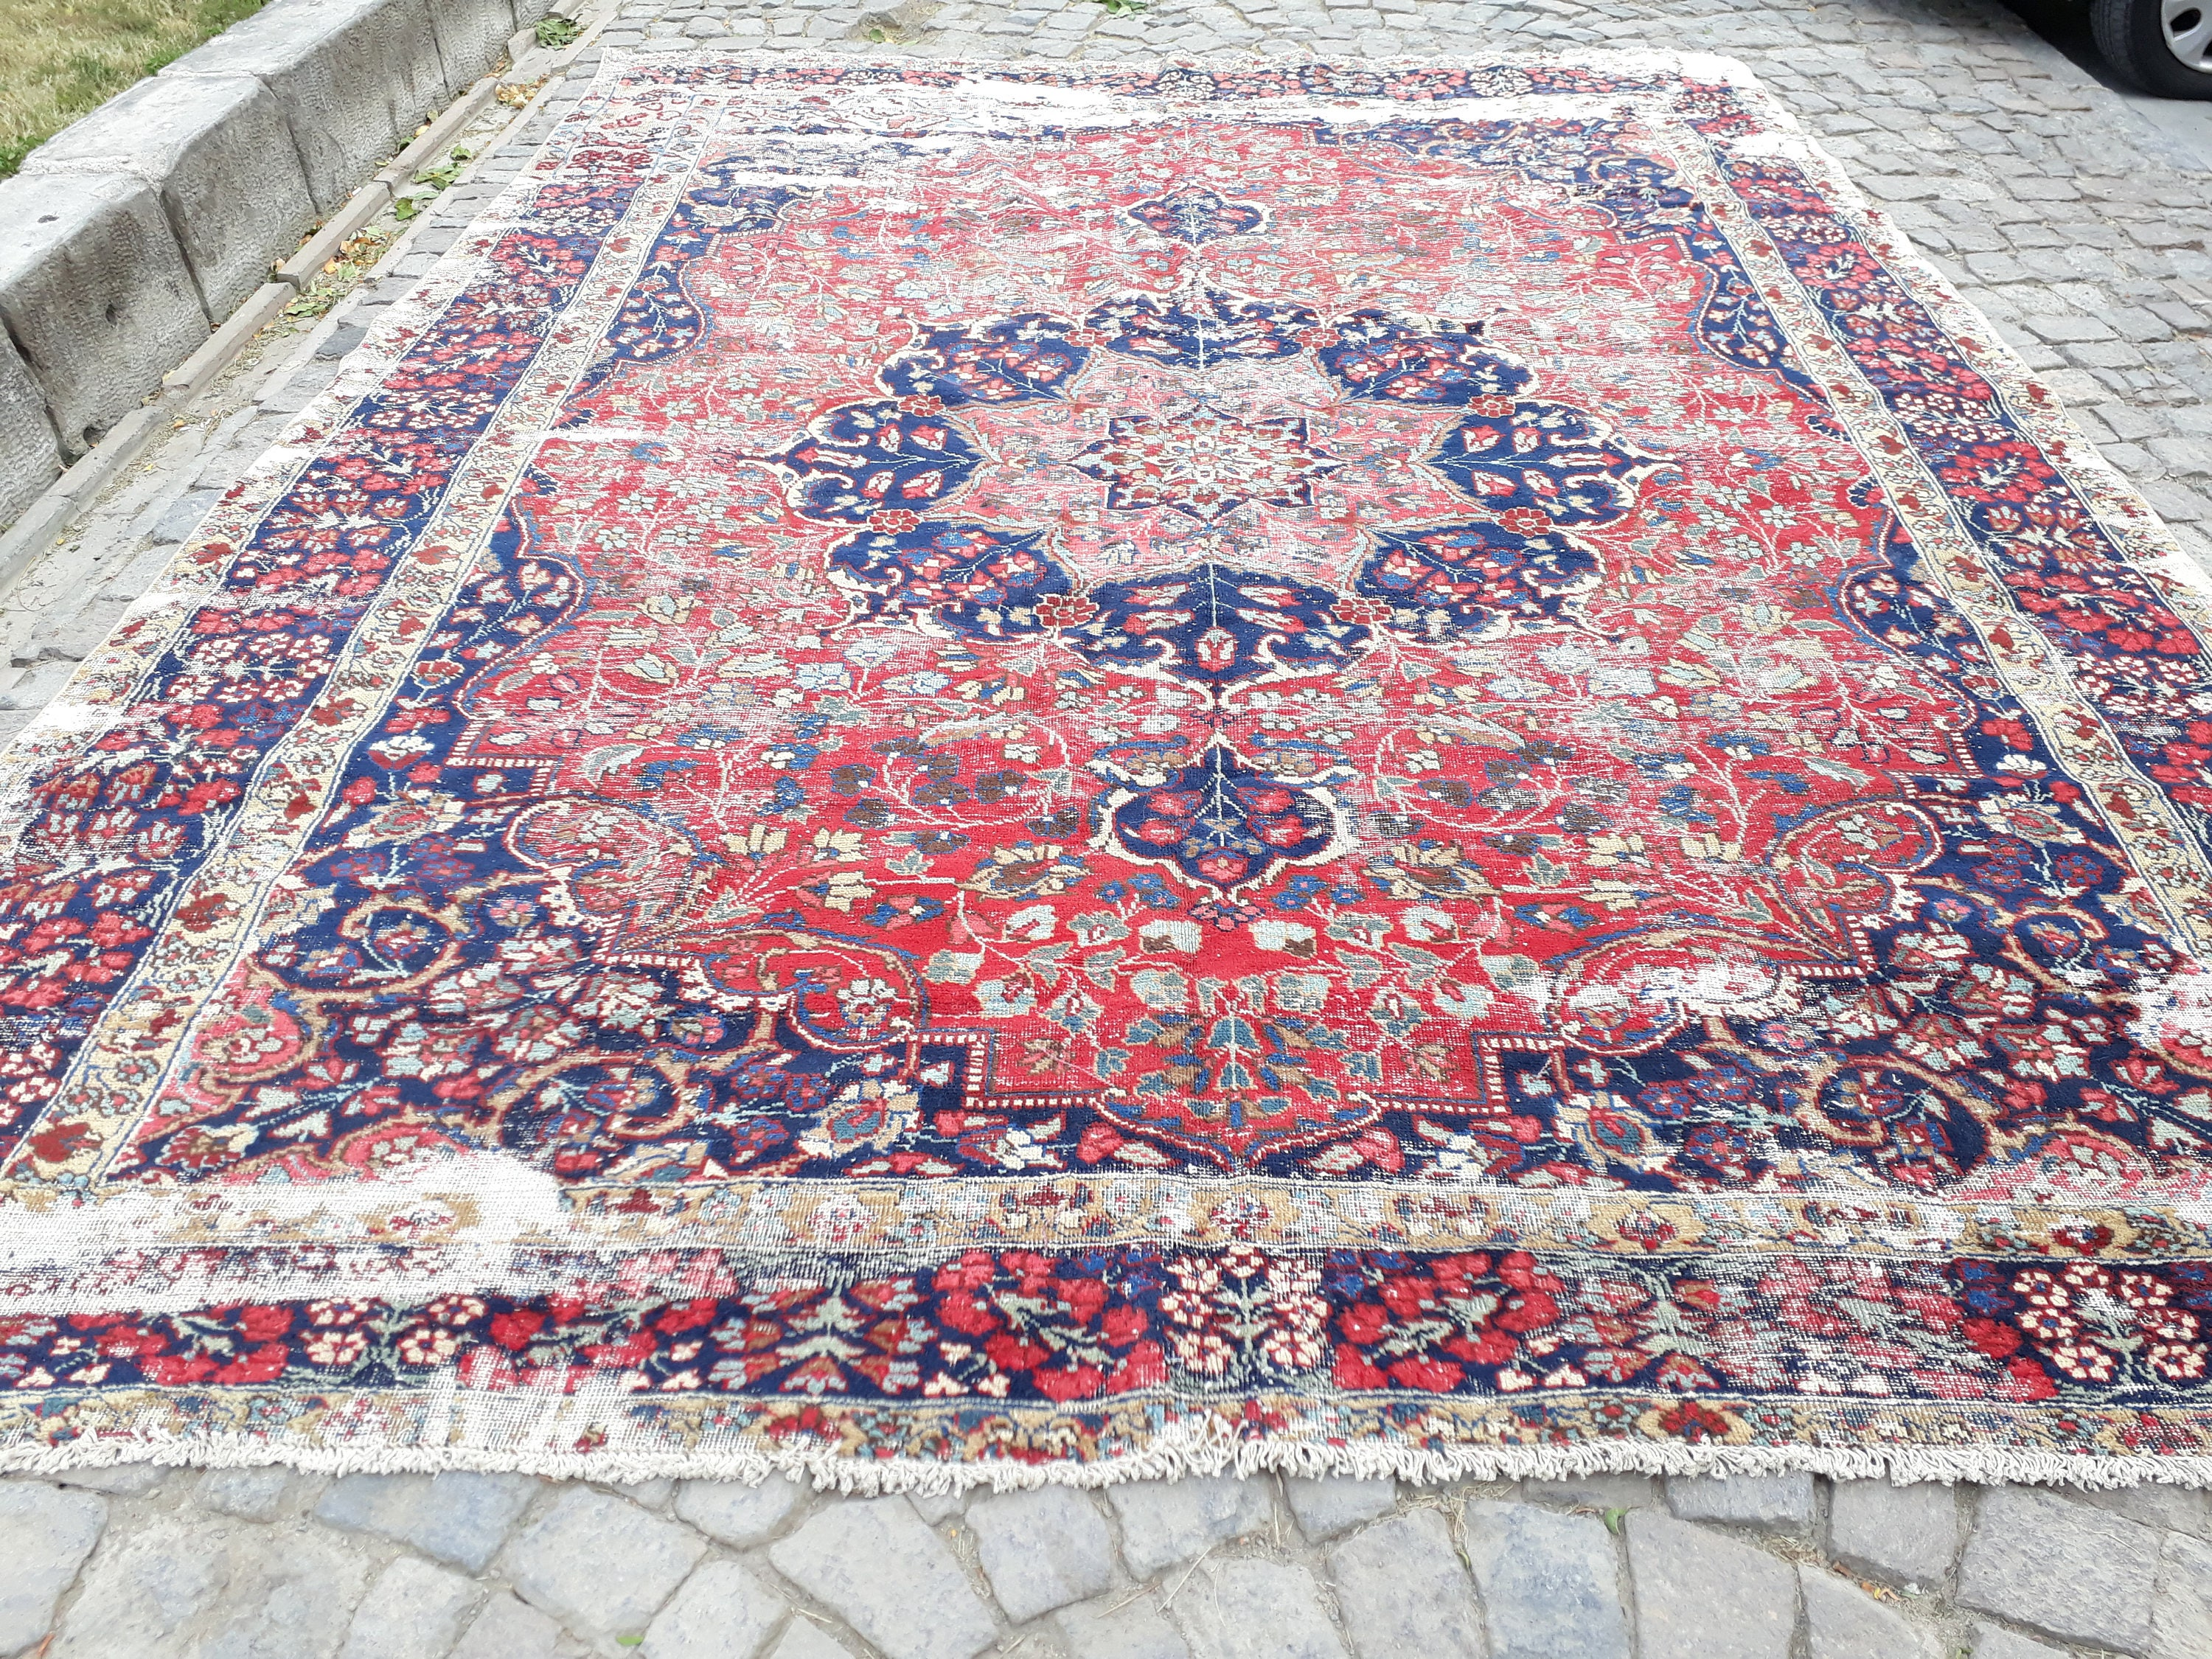 rug room for furniture a boho uncategorized glorious bohemian style luxury of elegant living our